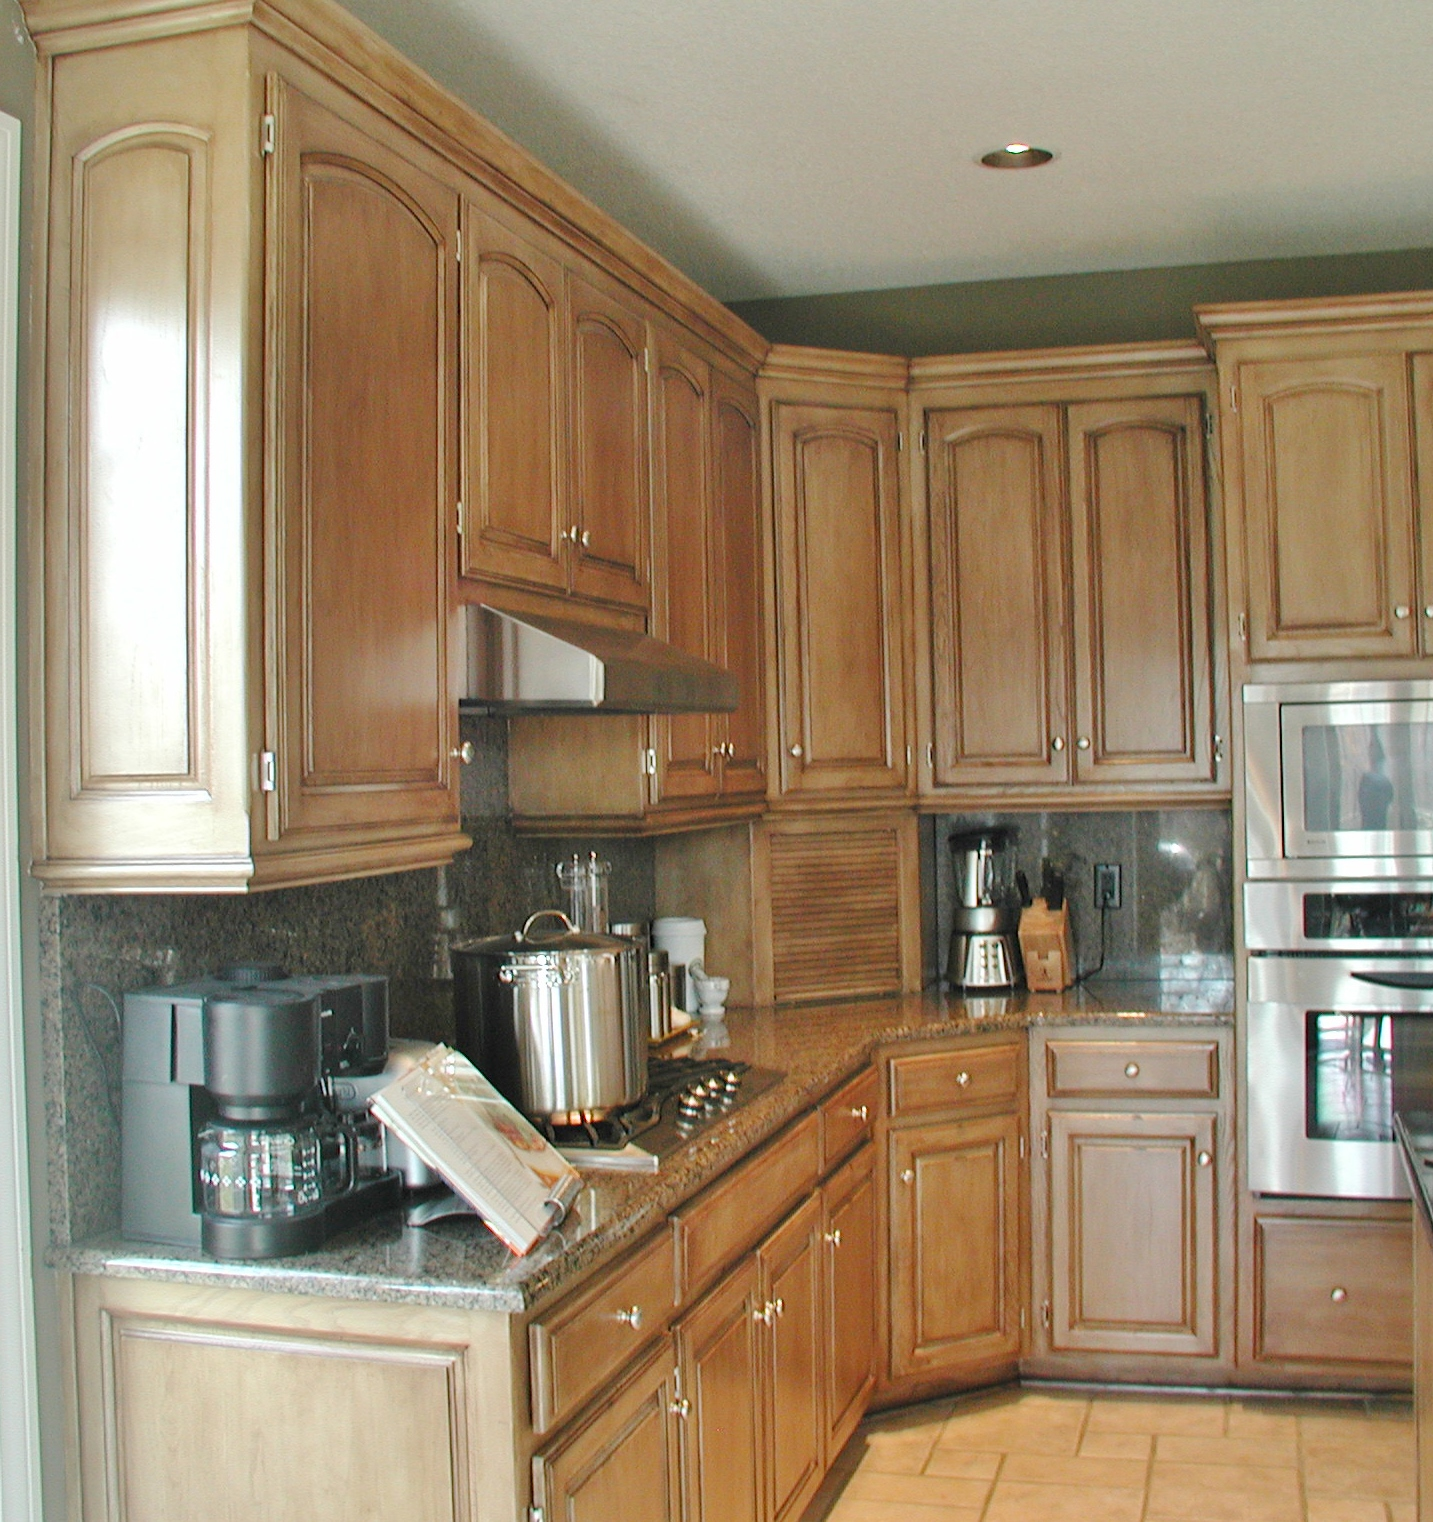 jewel design plum like pano black in even toned inc the colored tones kitchen construction or navy wood complement walls emerald countertops group green for and two central dark to edit heirloom trends trend light uses